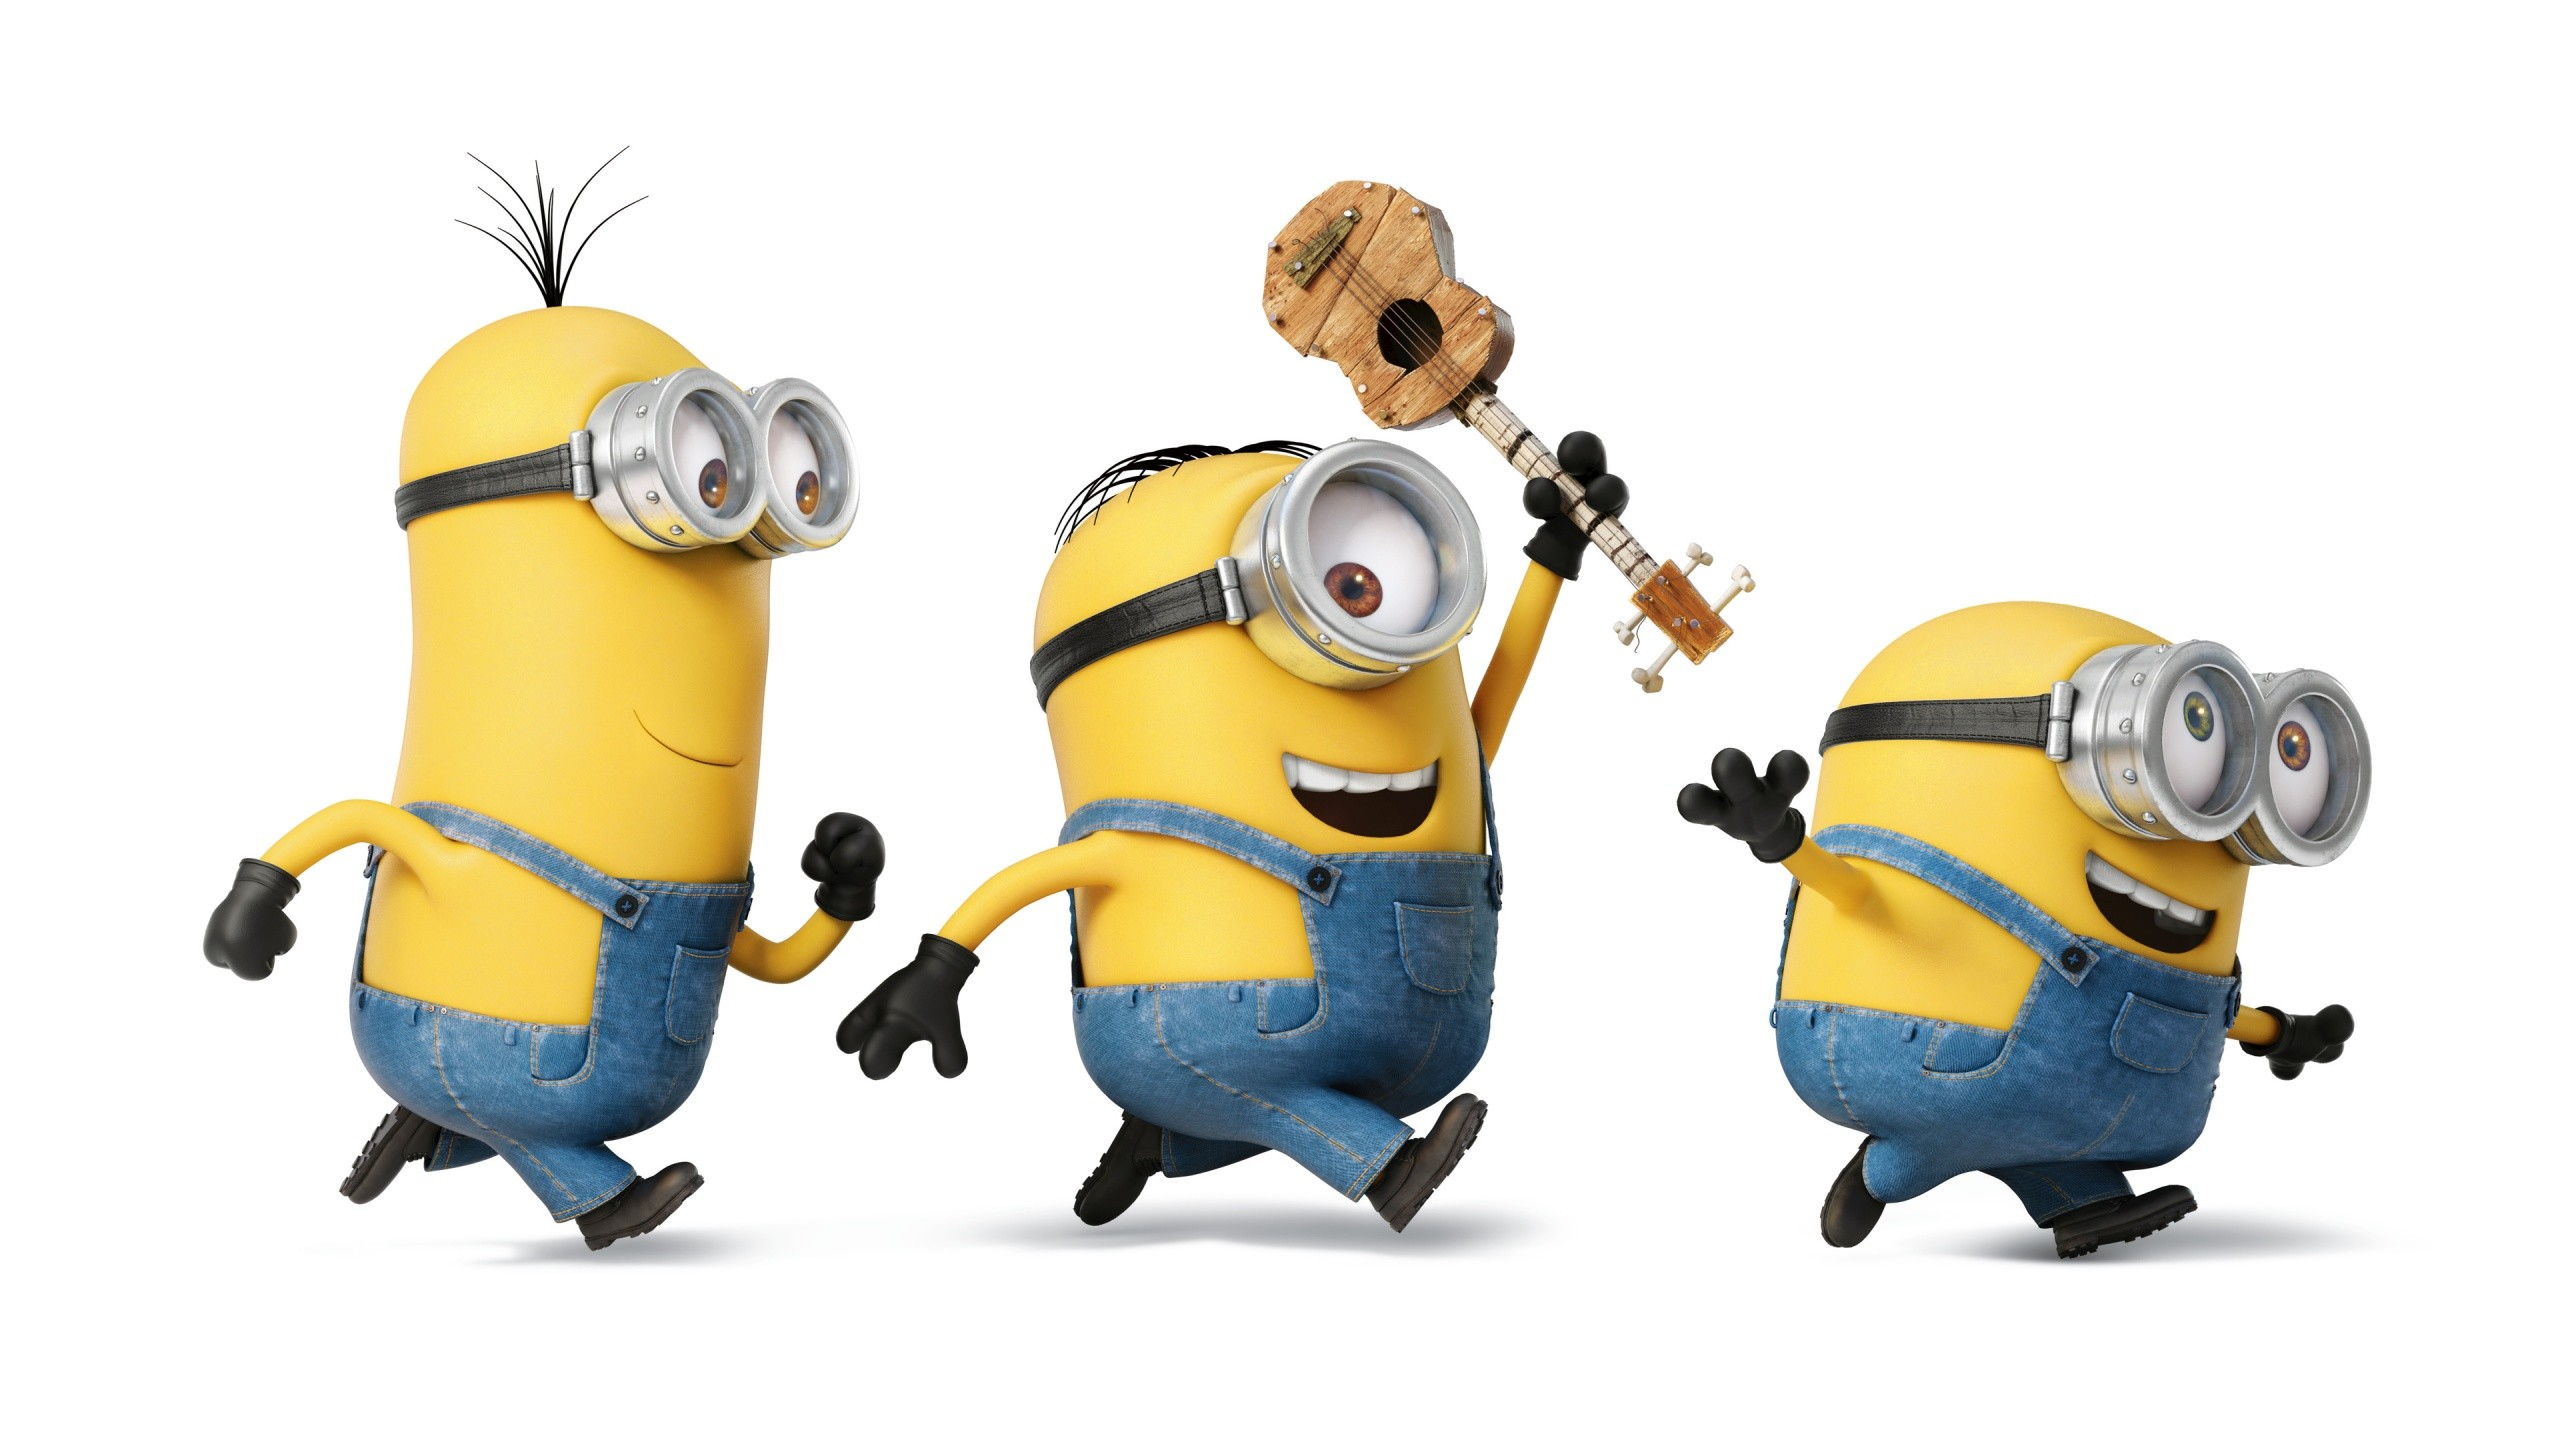 2560x1440 Minion-Wallpapers-HD-Free-Download